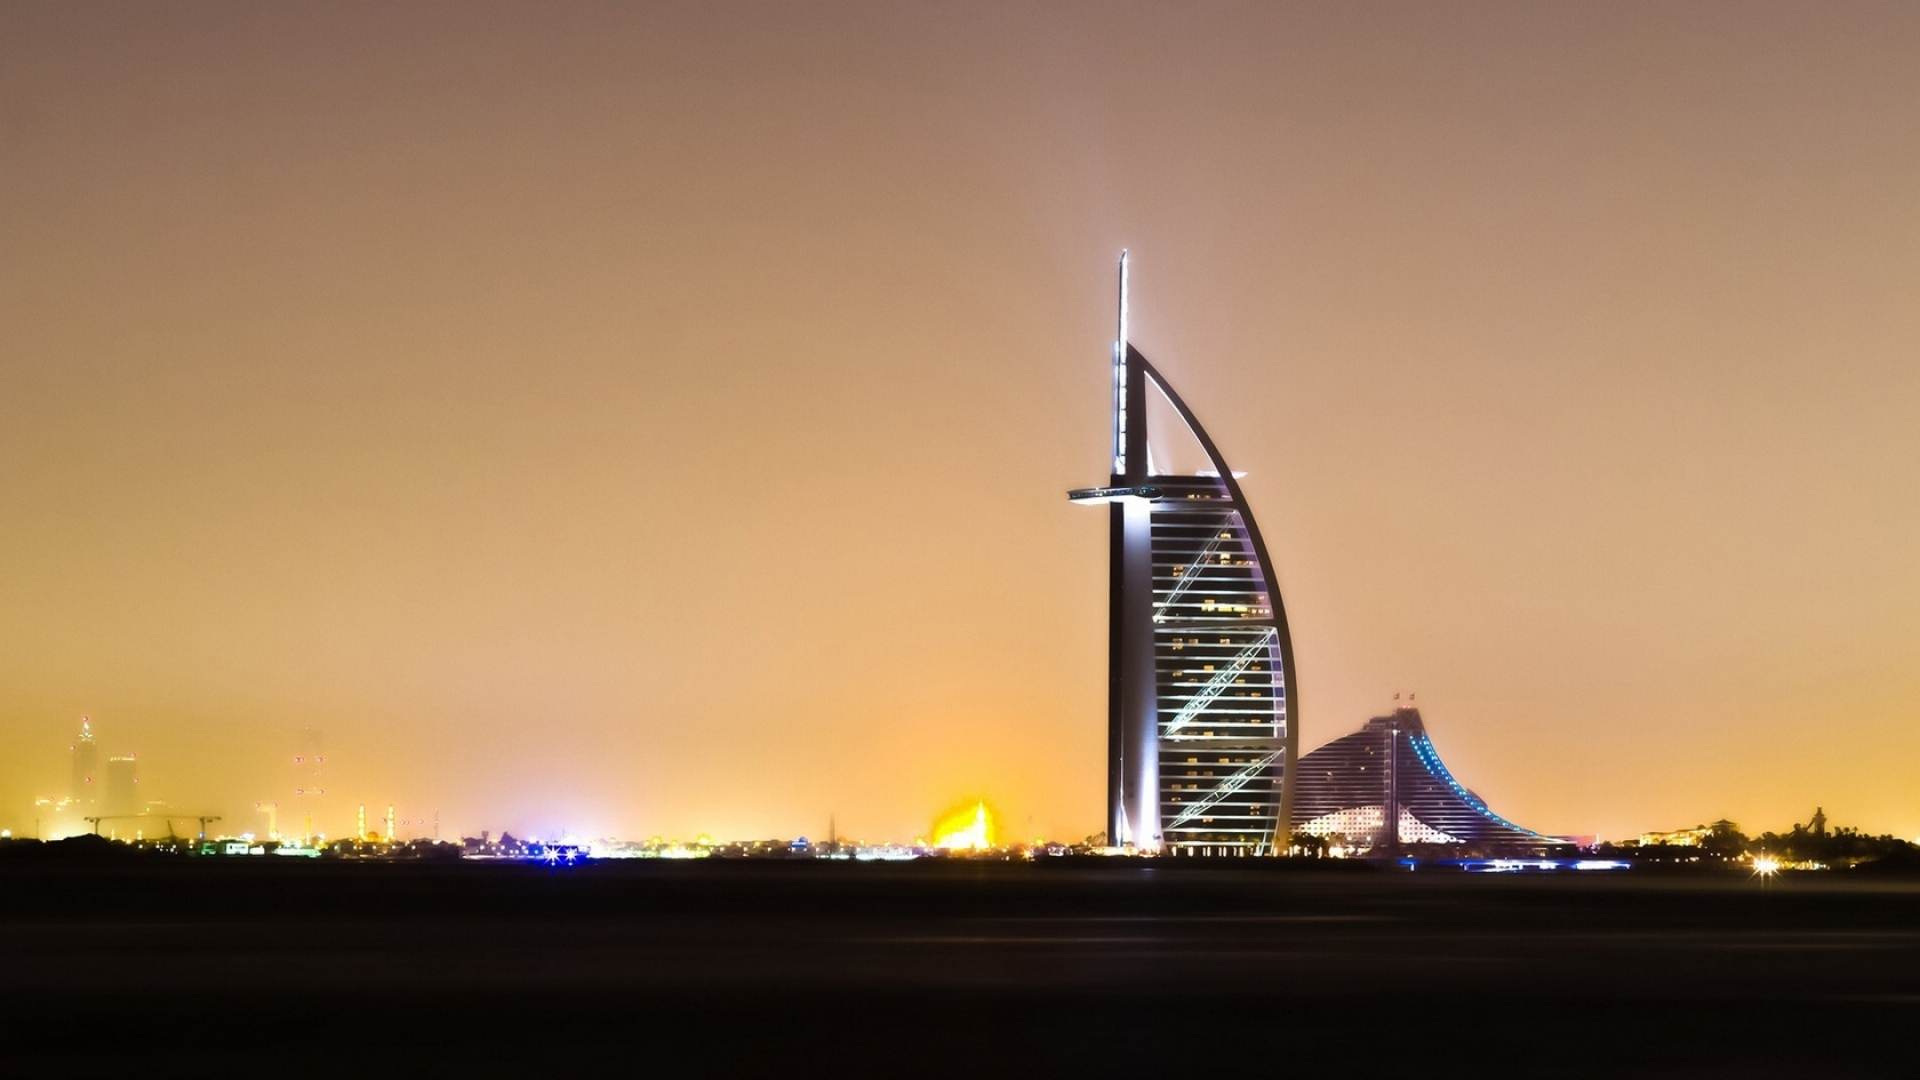 Full hd burj al arab hotel wallpaper full hd pictures - Burj al arab wallpaper iphone ...